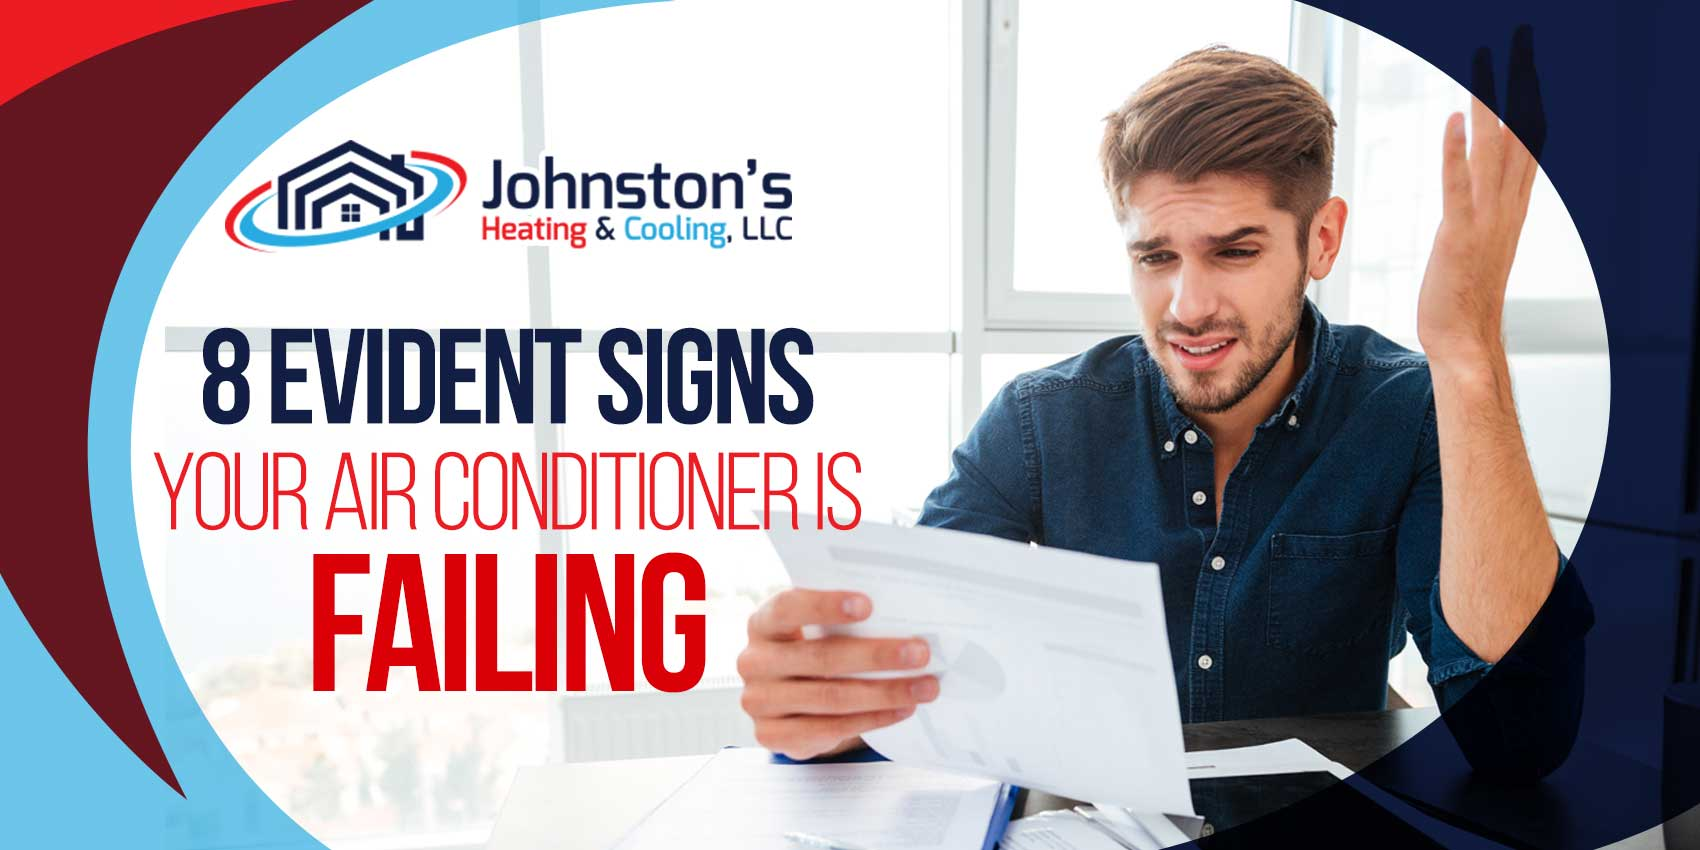 8 Evident Signs Your Air Conditioner is Failing